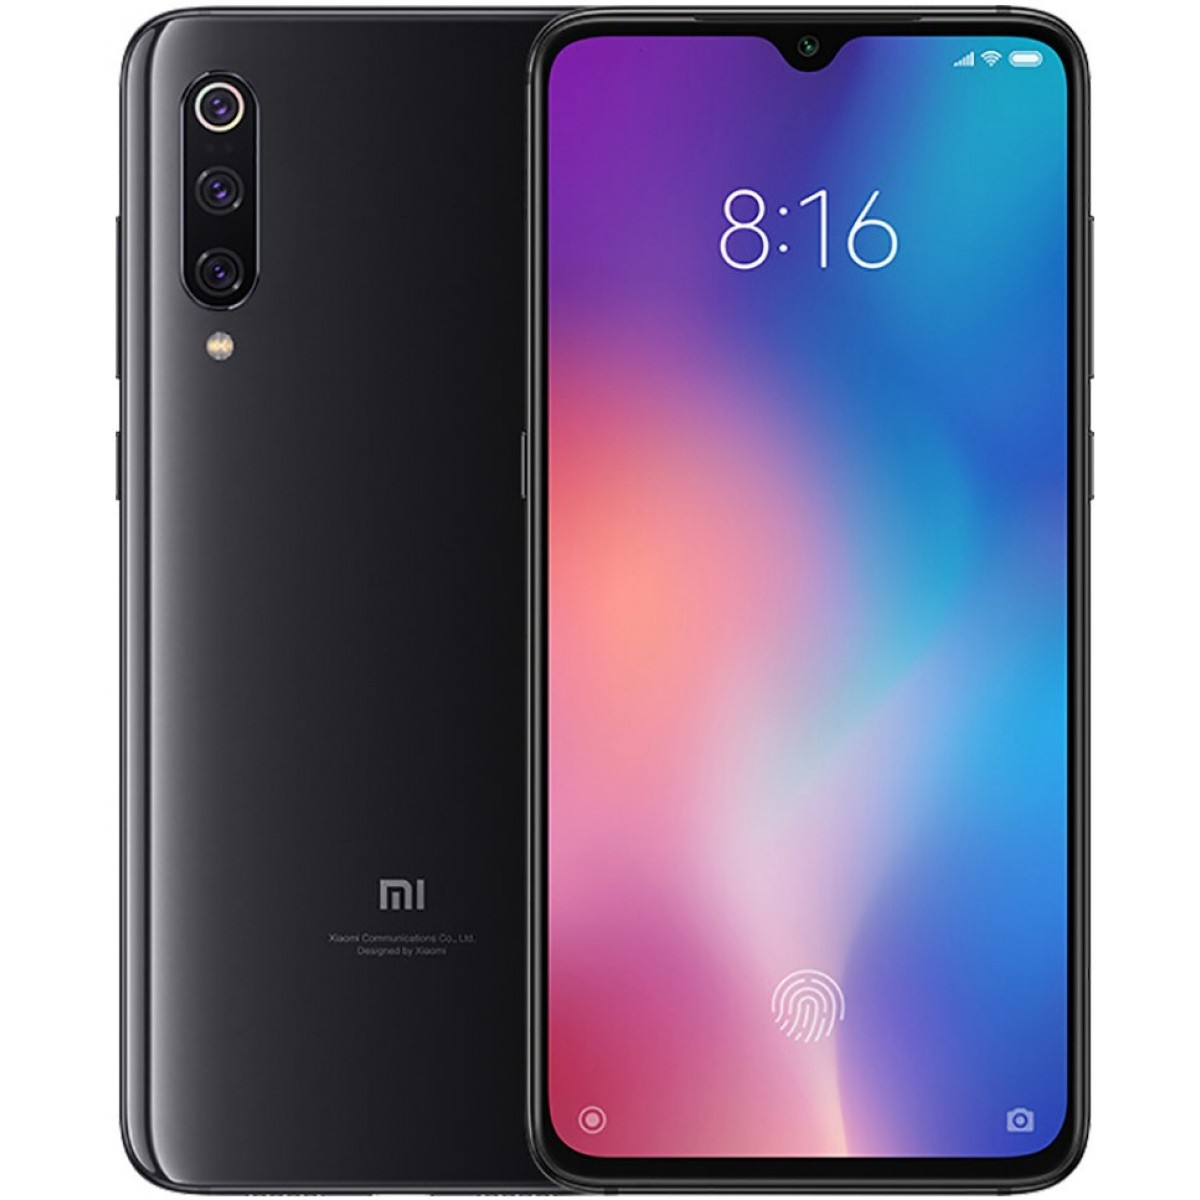 Xiaomi MI 9 Dual SIM - 64GB, 6GB RAM- Global Versia Piano Black